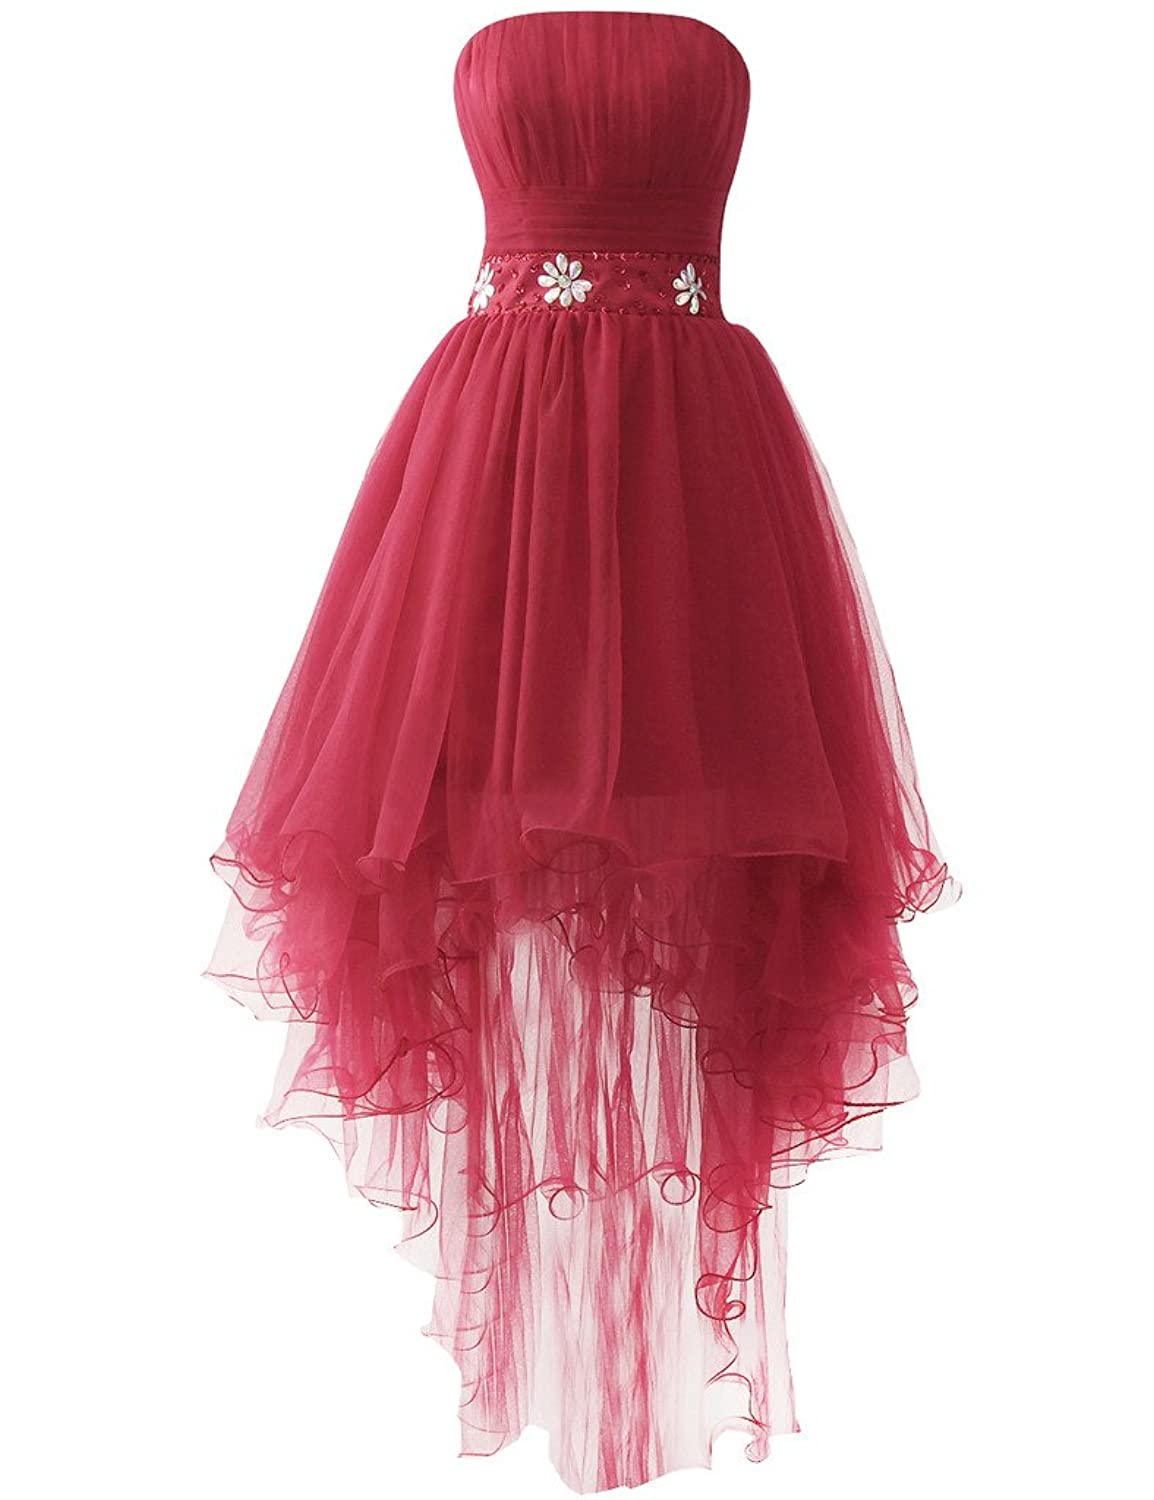 JAEDEN Strapless Prom Dresses High Low Homecoming Cocktail Dress